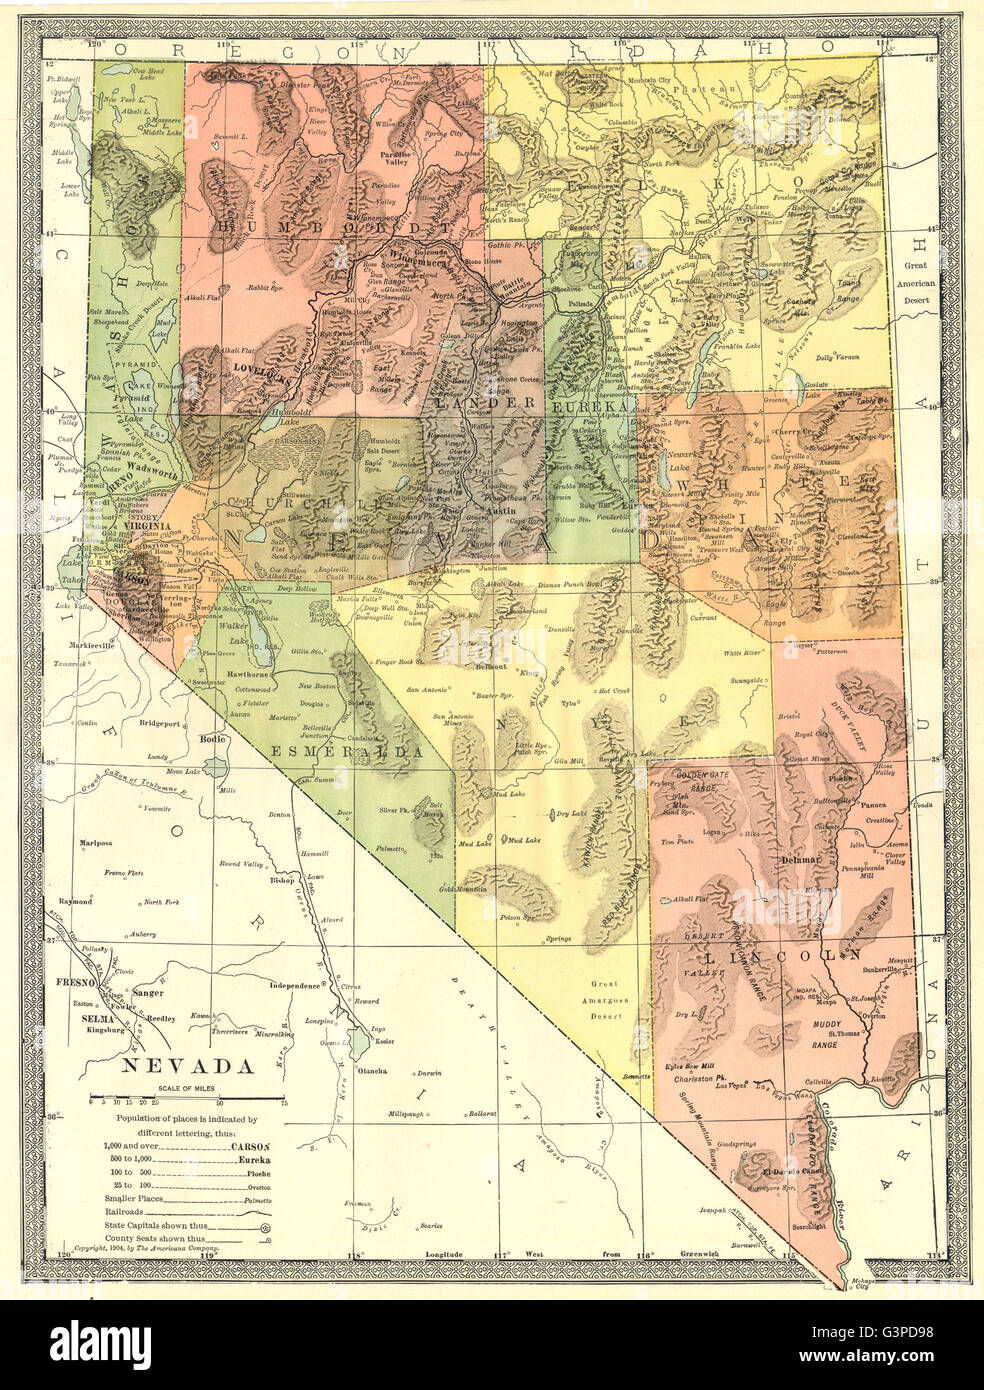 Nevada State Map Where Does The Series Number On A Map Appear - Nevada state map